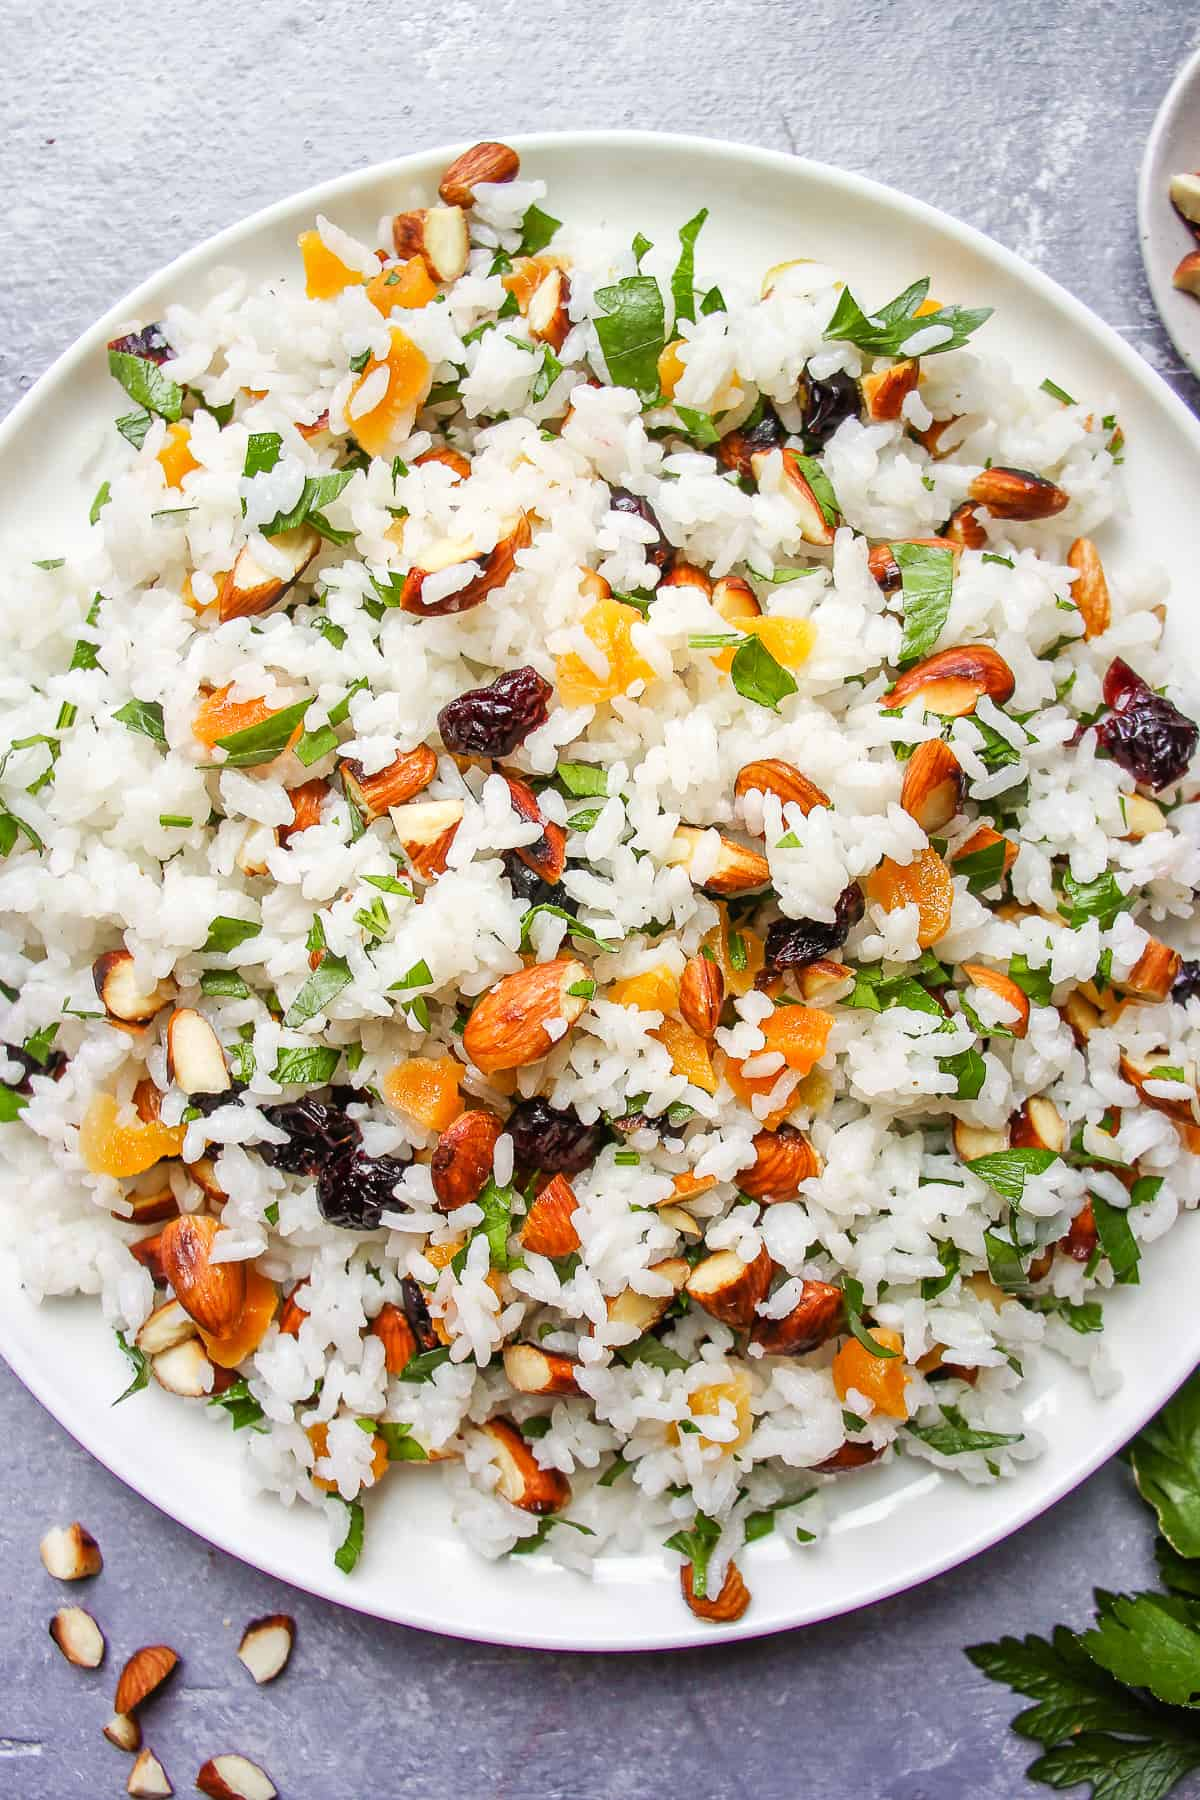 Vegan rice with dried fruit and almonds